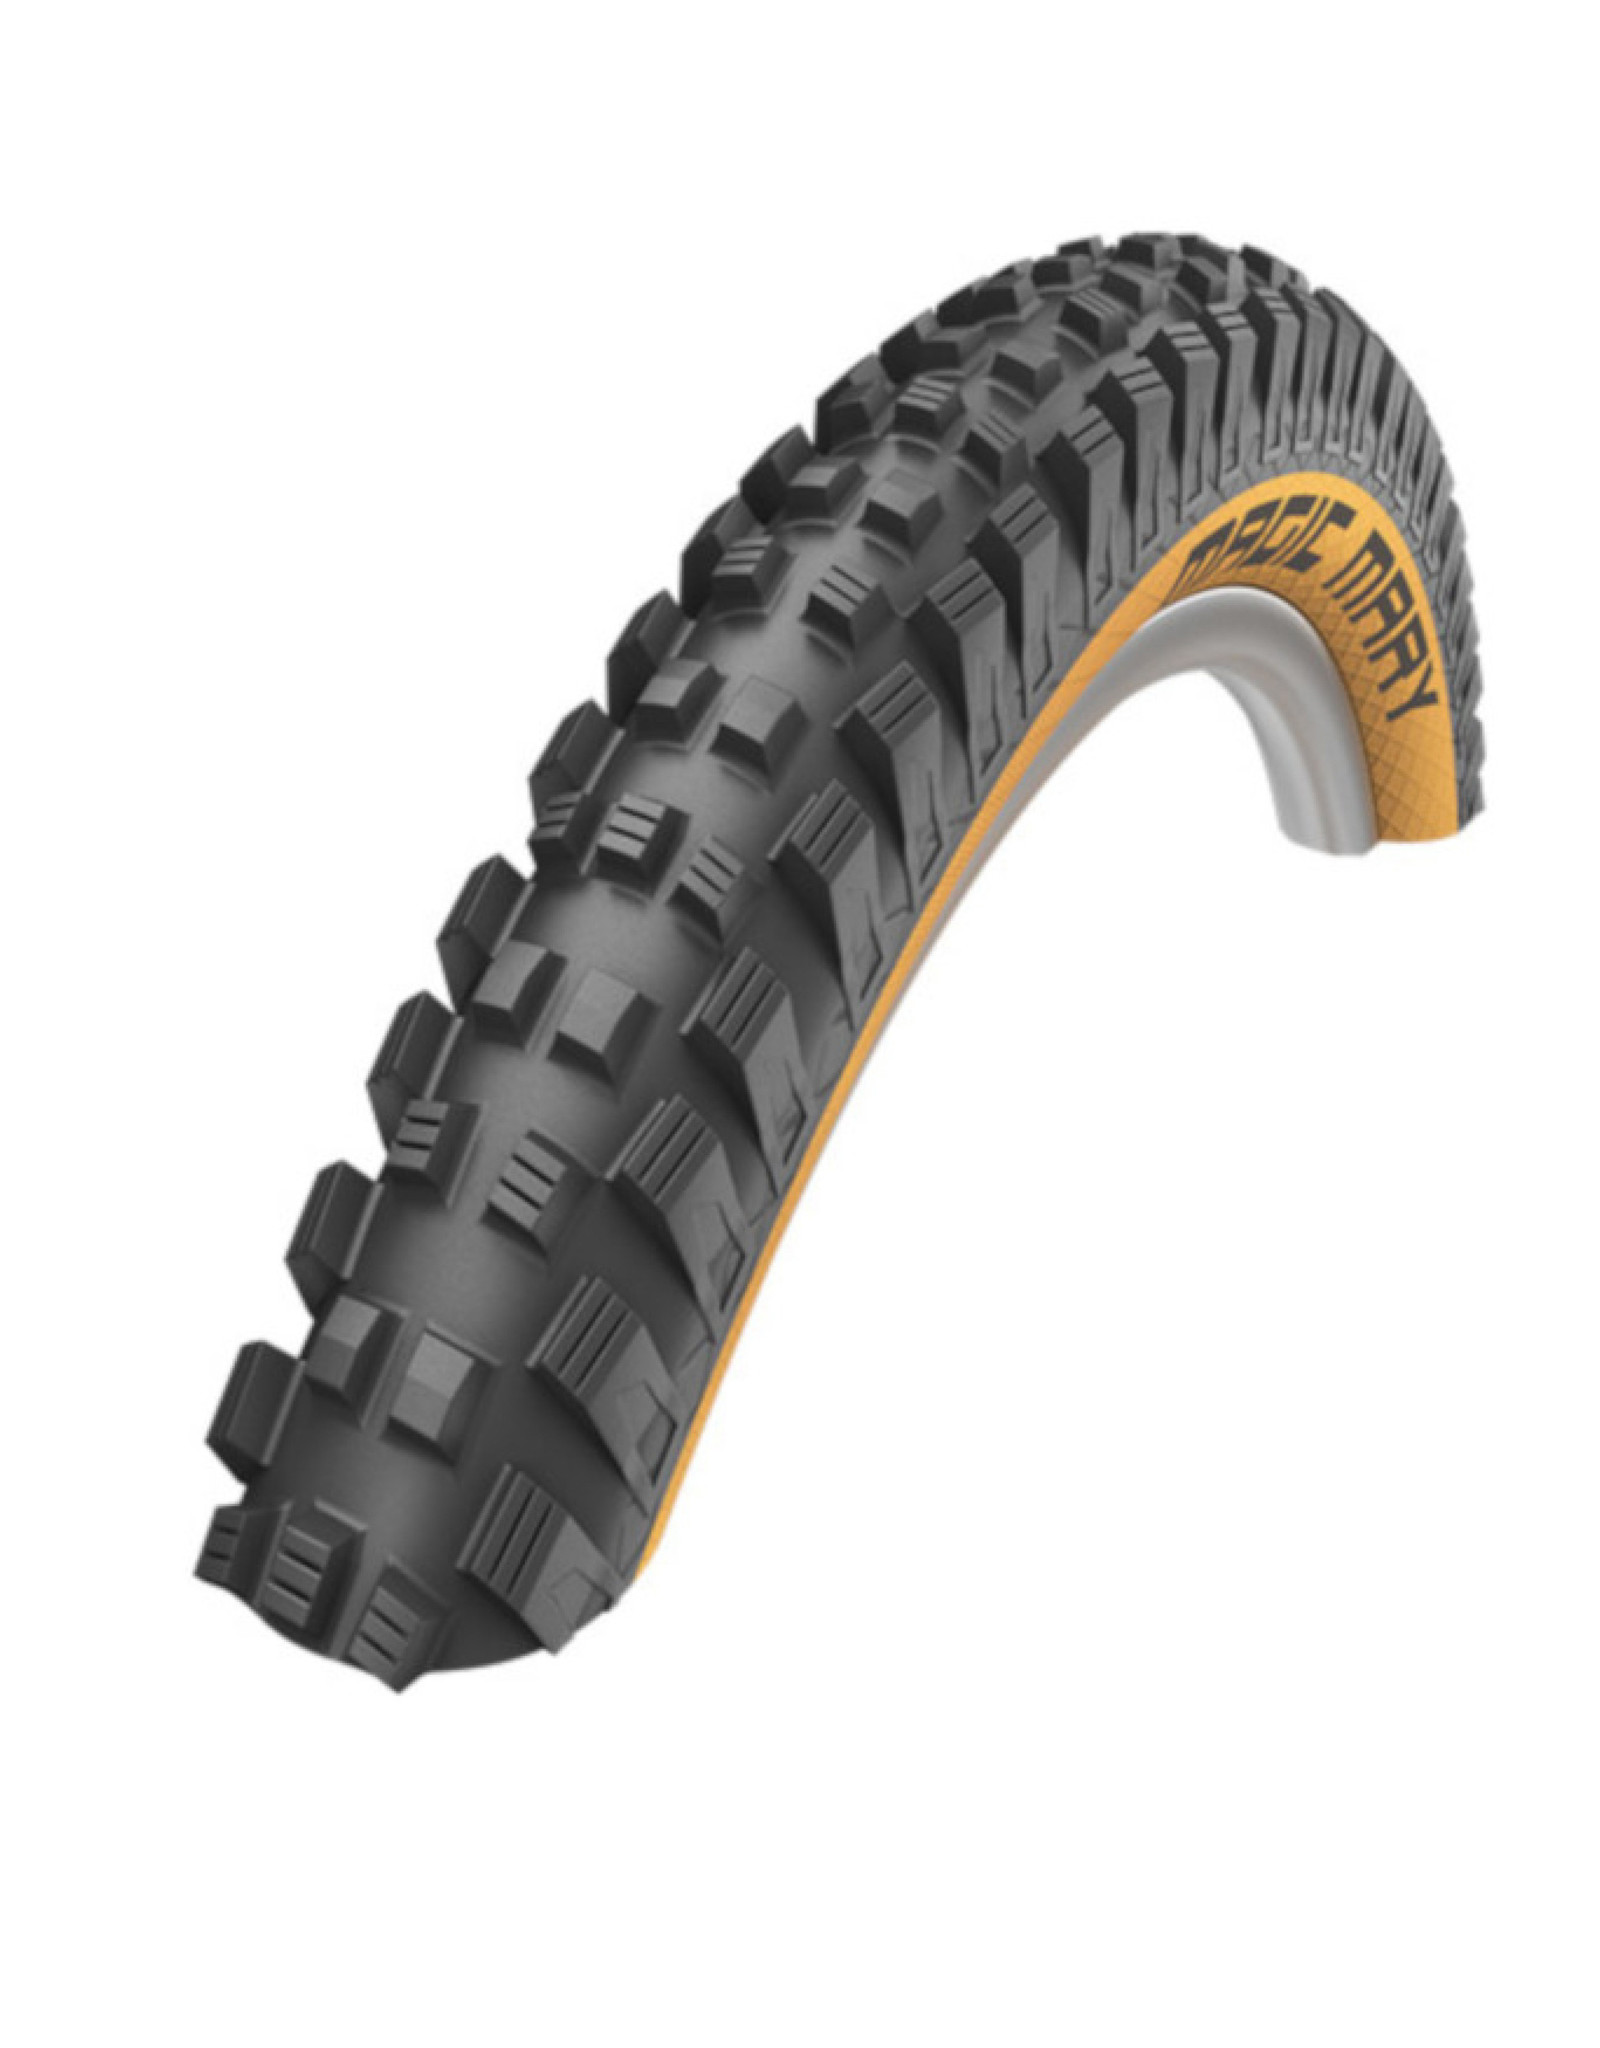 Schwalbe Pneu Schwalbe Magic Mary 29 X 2.4 SG SFT Skin